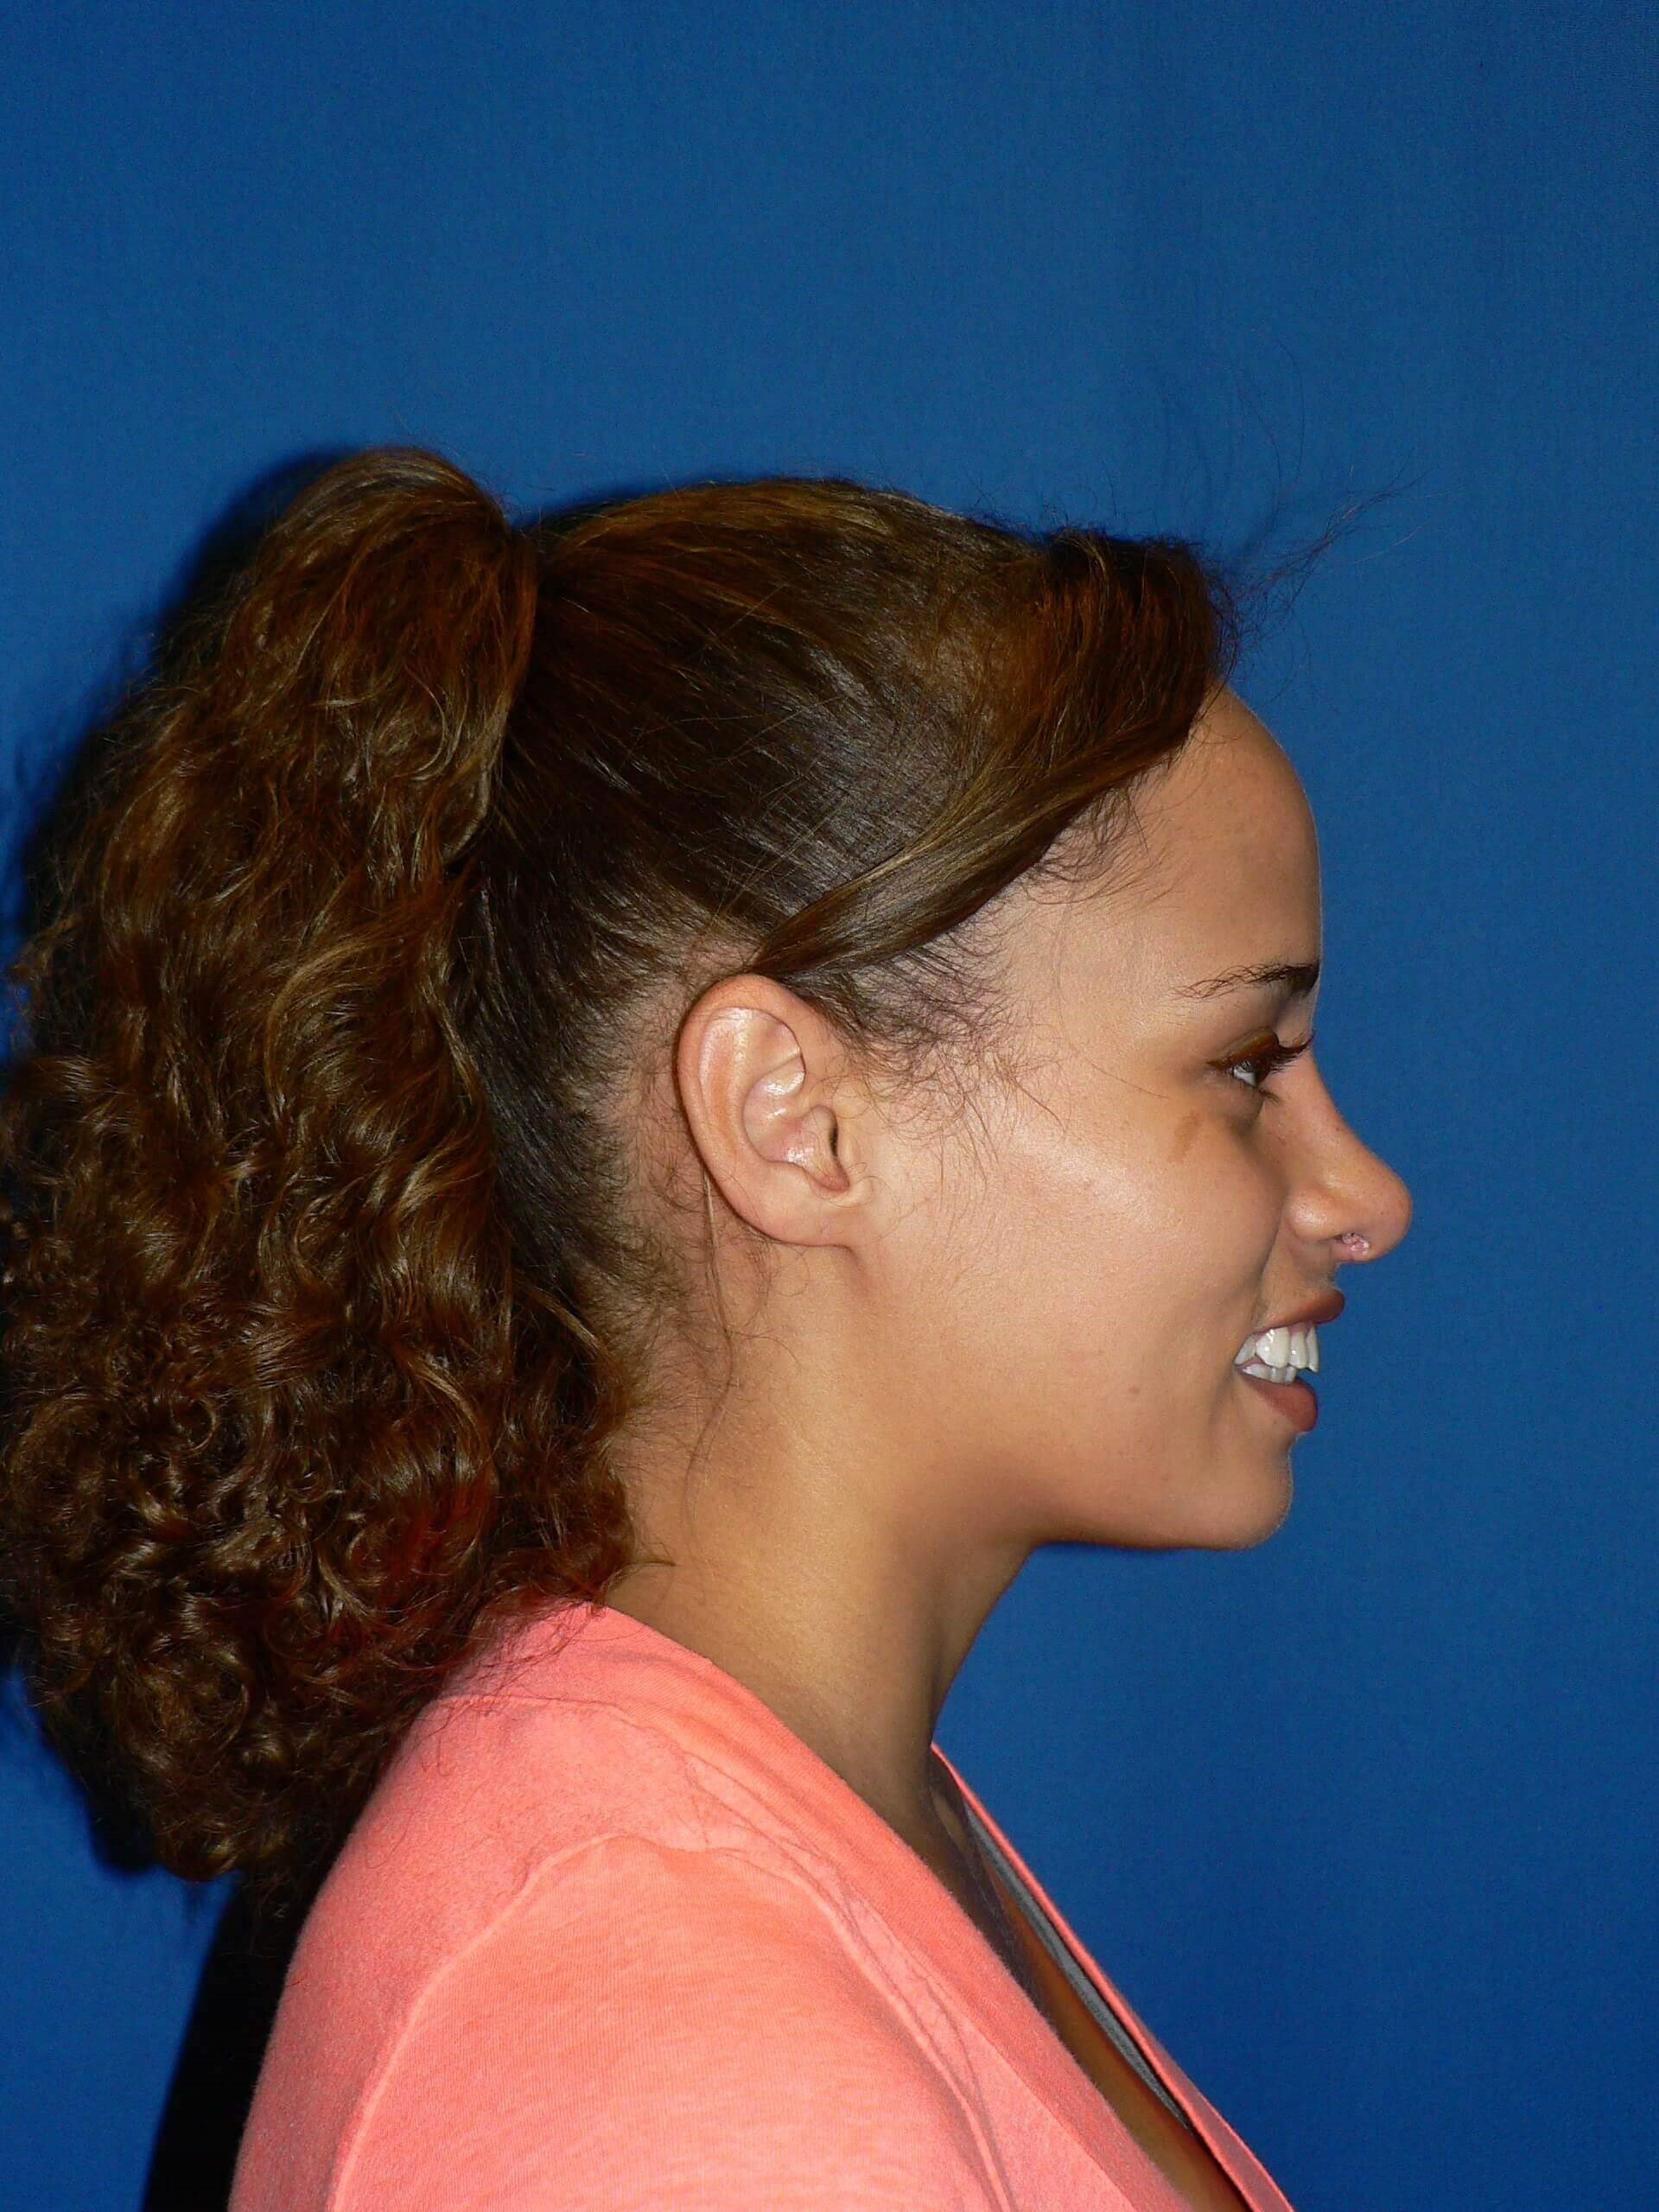 Ethnic Rhinoplasty Denver After